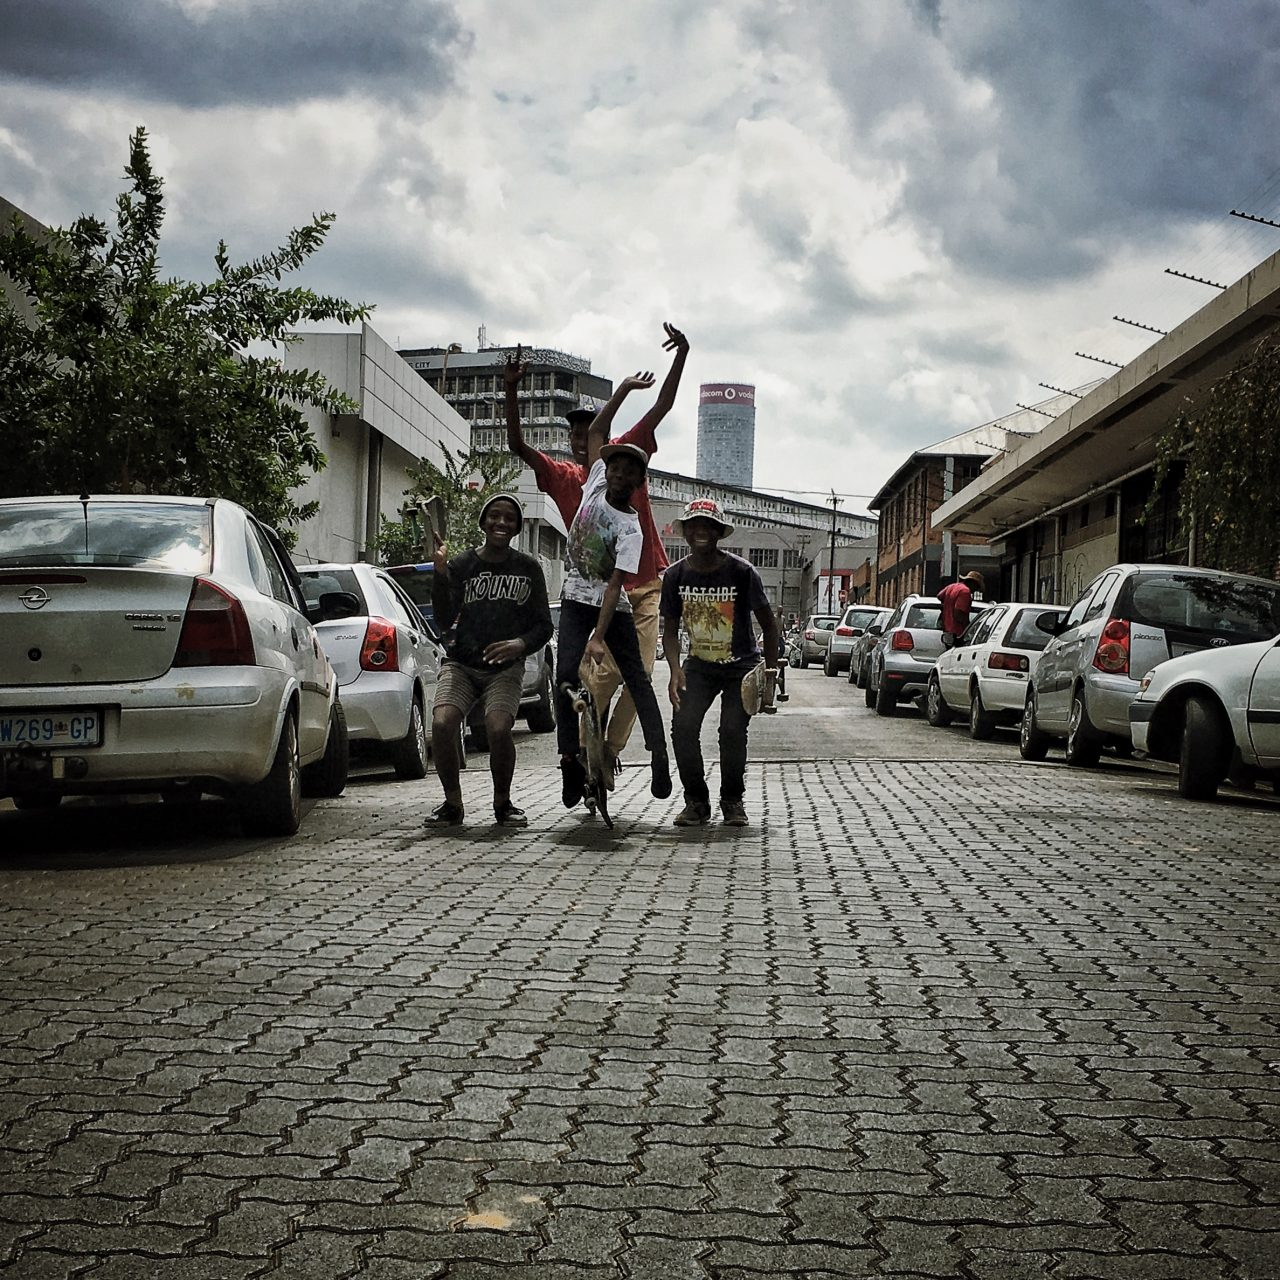 Streetphotography South Africa 8